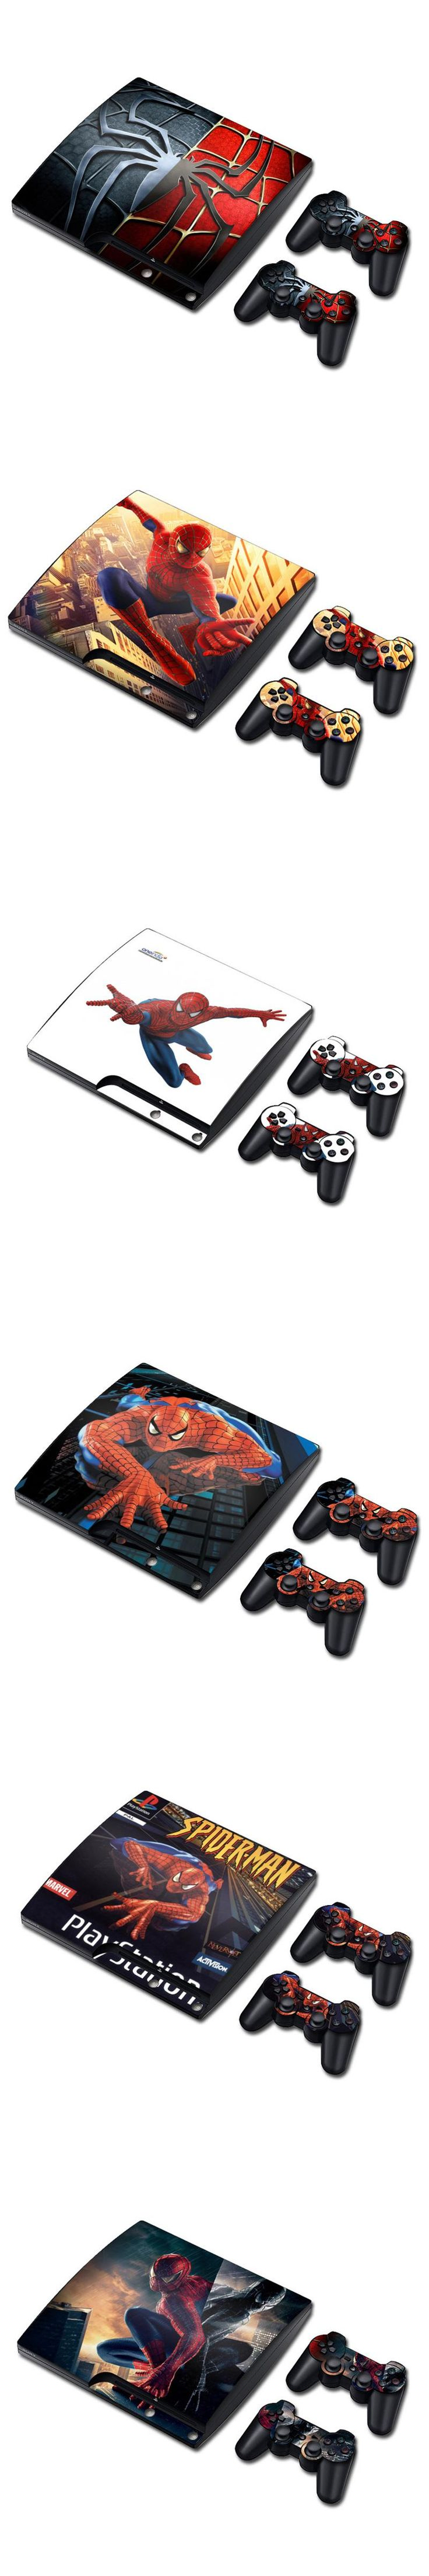 Spider Man Vinyl Decal Skin Sticker for PS3 Slim PlayStation 3 Slim Console with 2Pcs For PS3 Controllers Covers